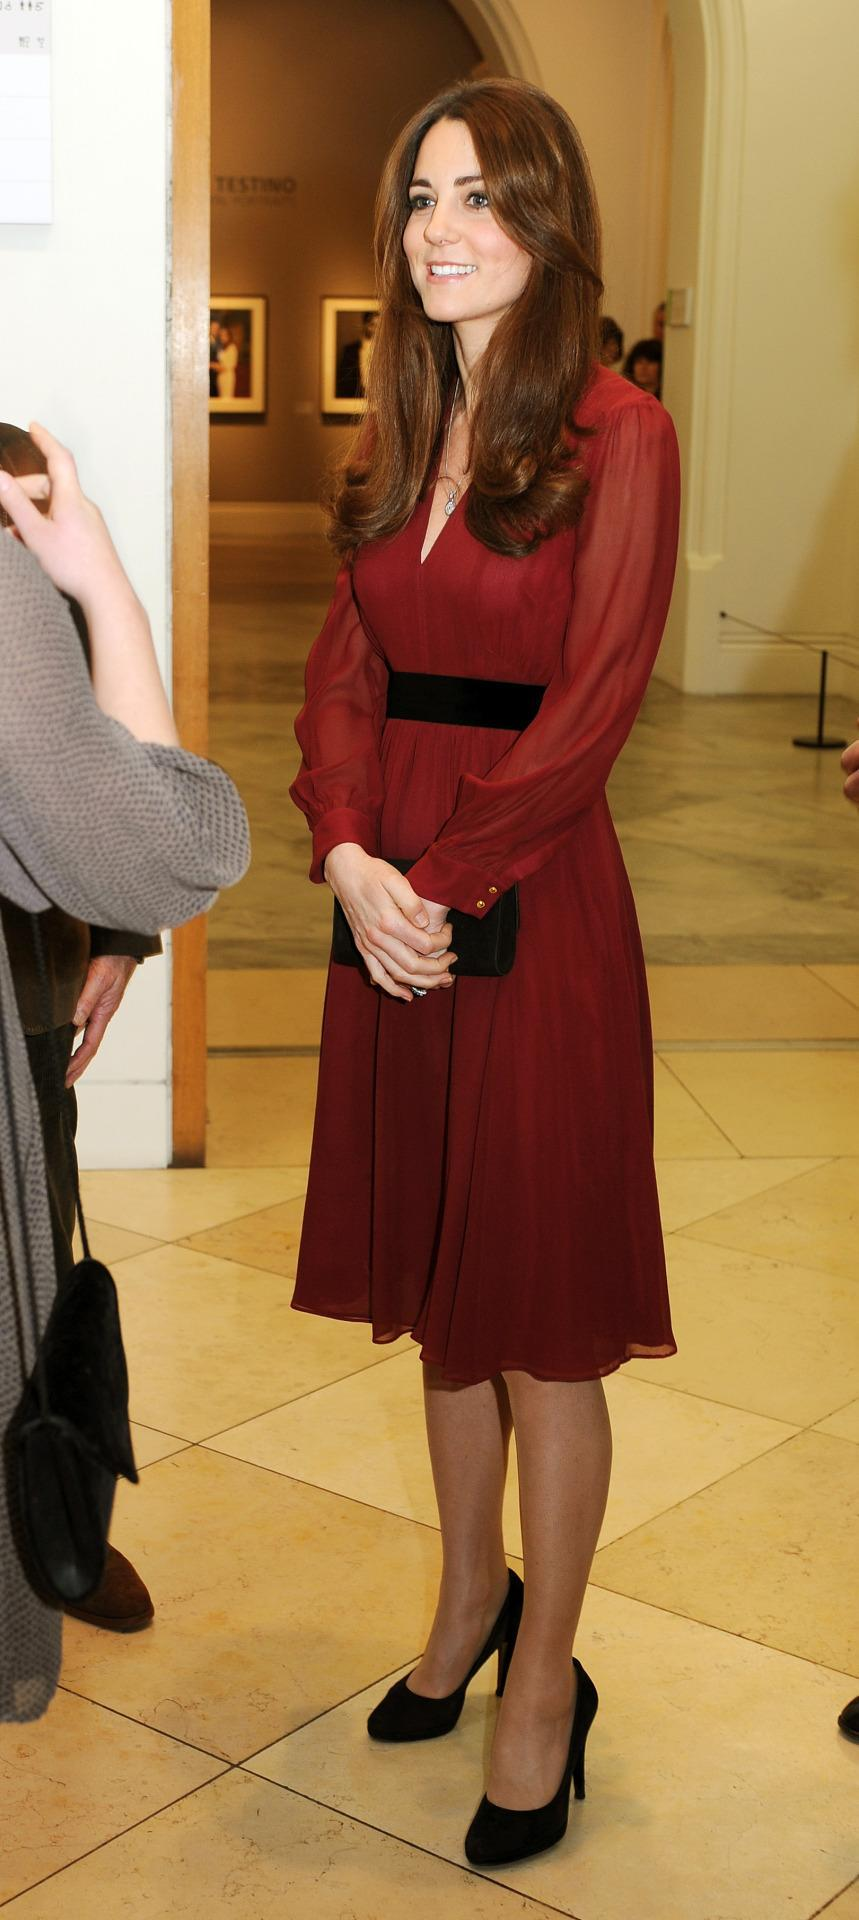 <p>The Duchess wore a red silk dress from high street retailer Whistles to view a portrait of herself at the National Portrait Gallery. She accessorised with black suede heels by Episode and a pendant necklace by Asprey. </p><p><i>[Photo: PA]</i></p>